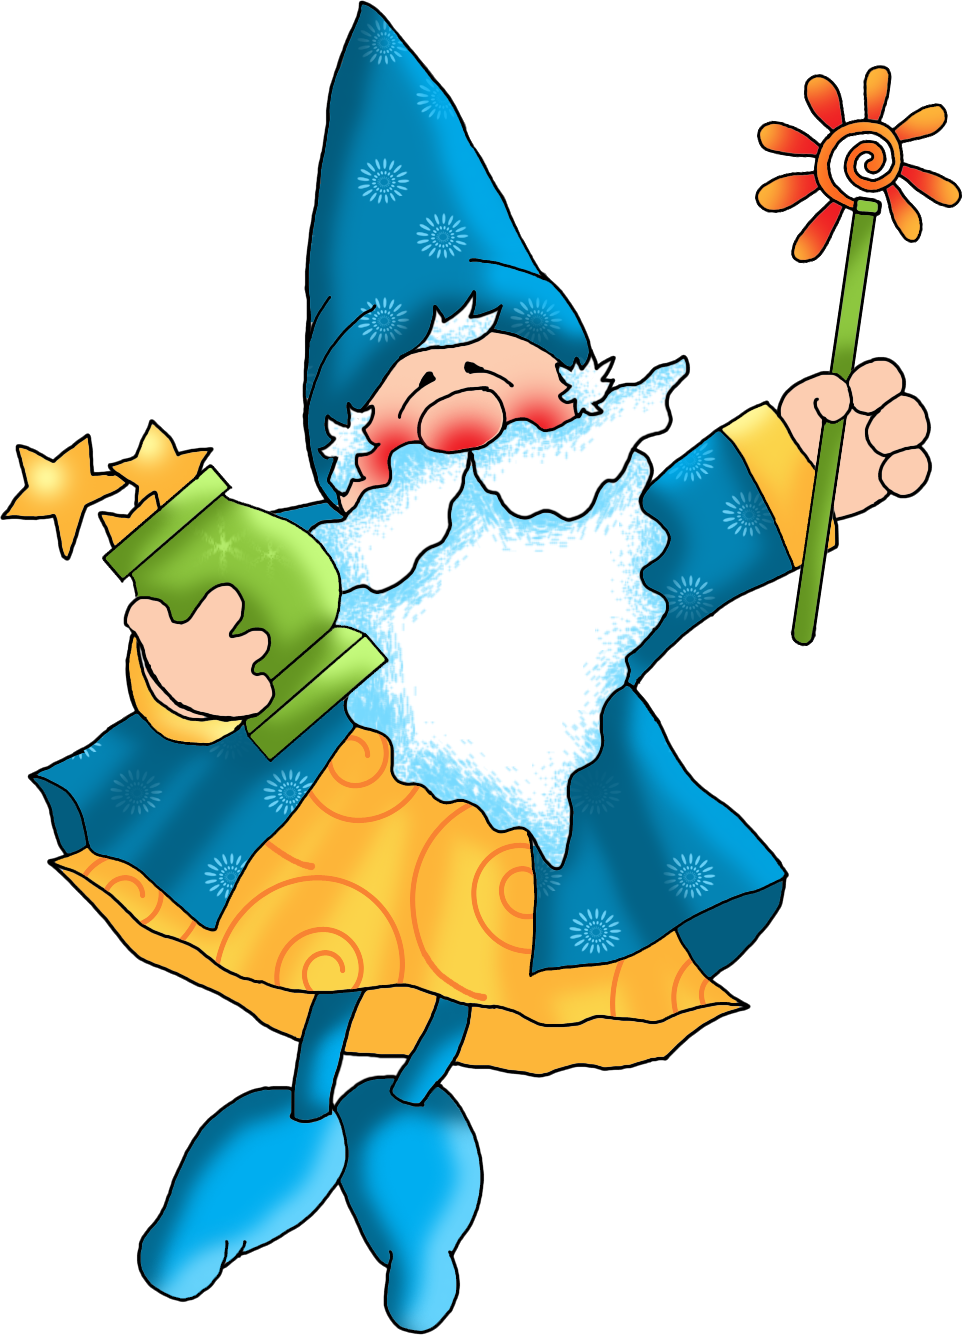 Witch clipart fairytale. Coleccion wizard wand png